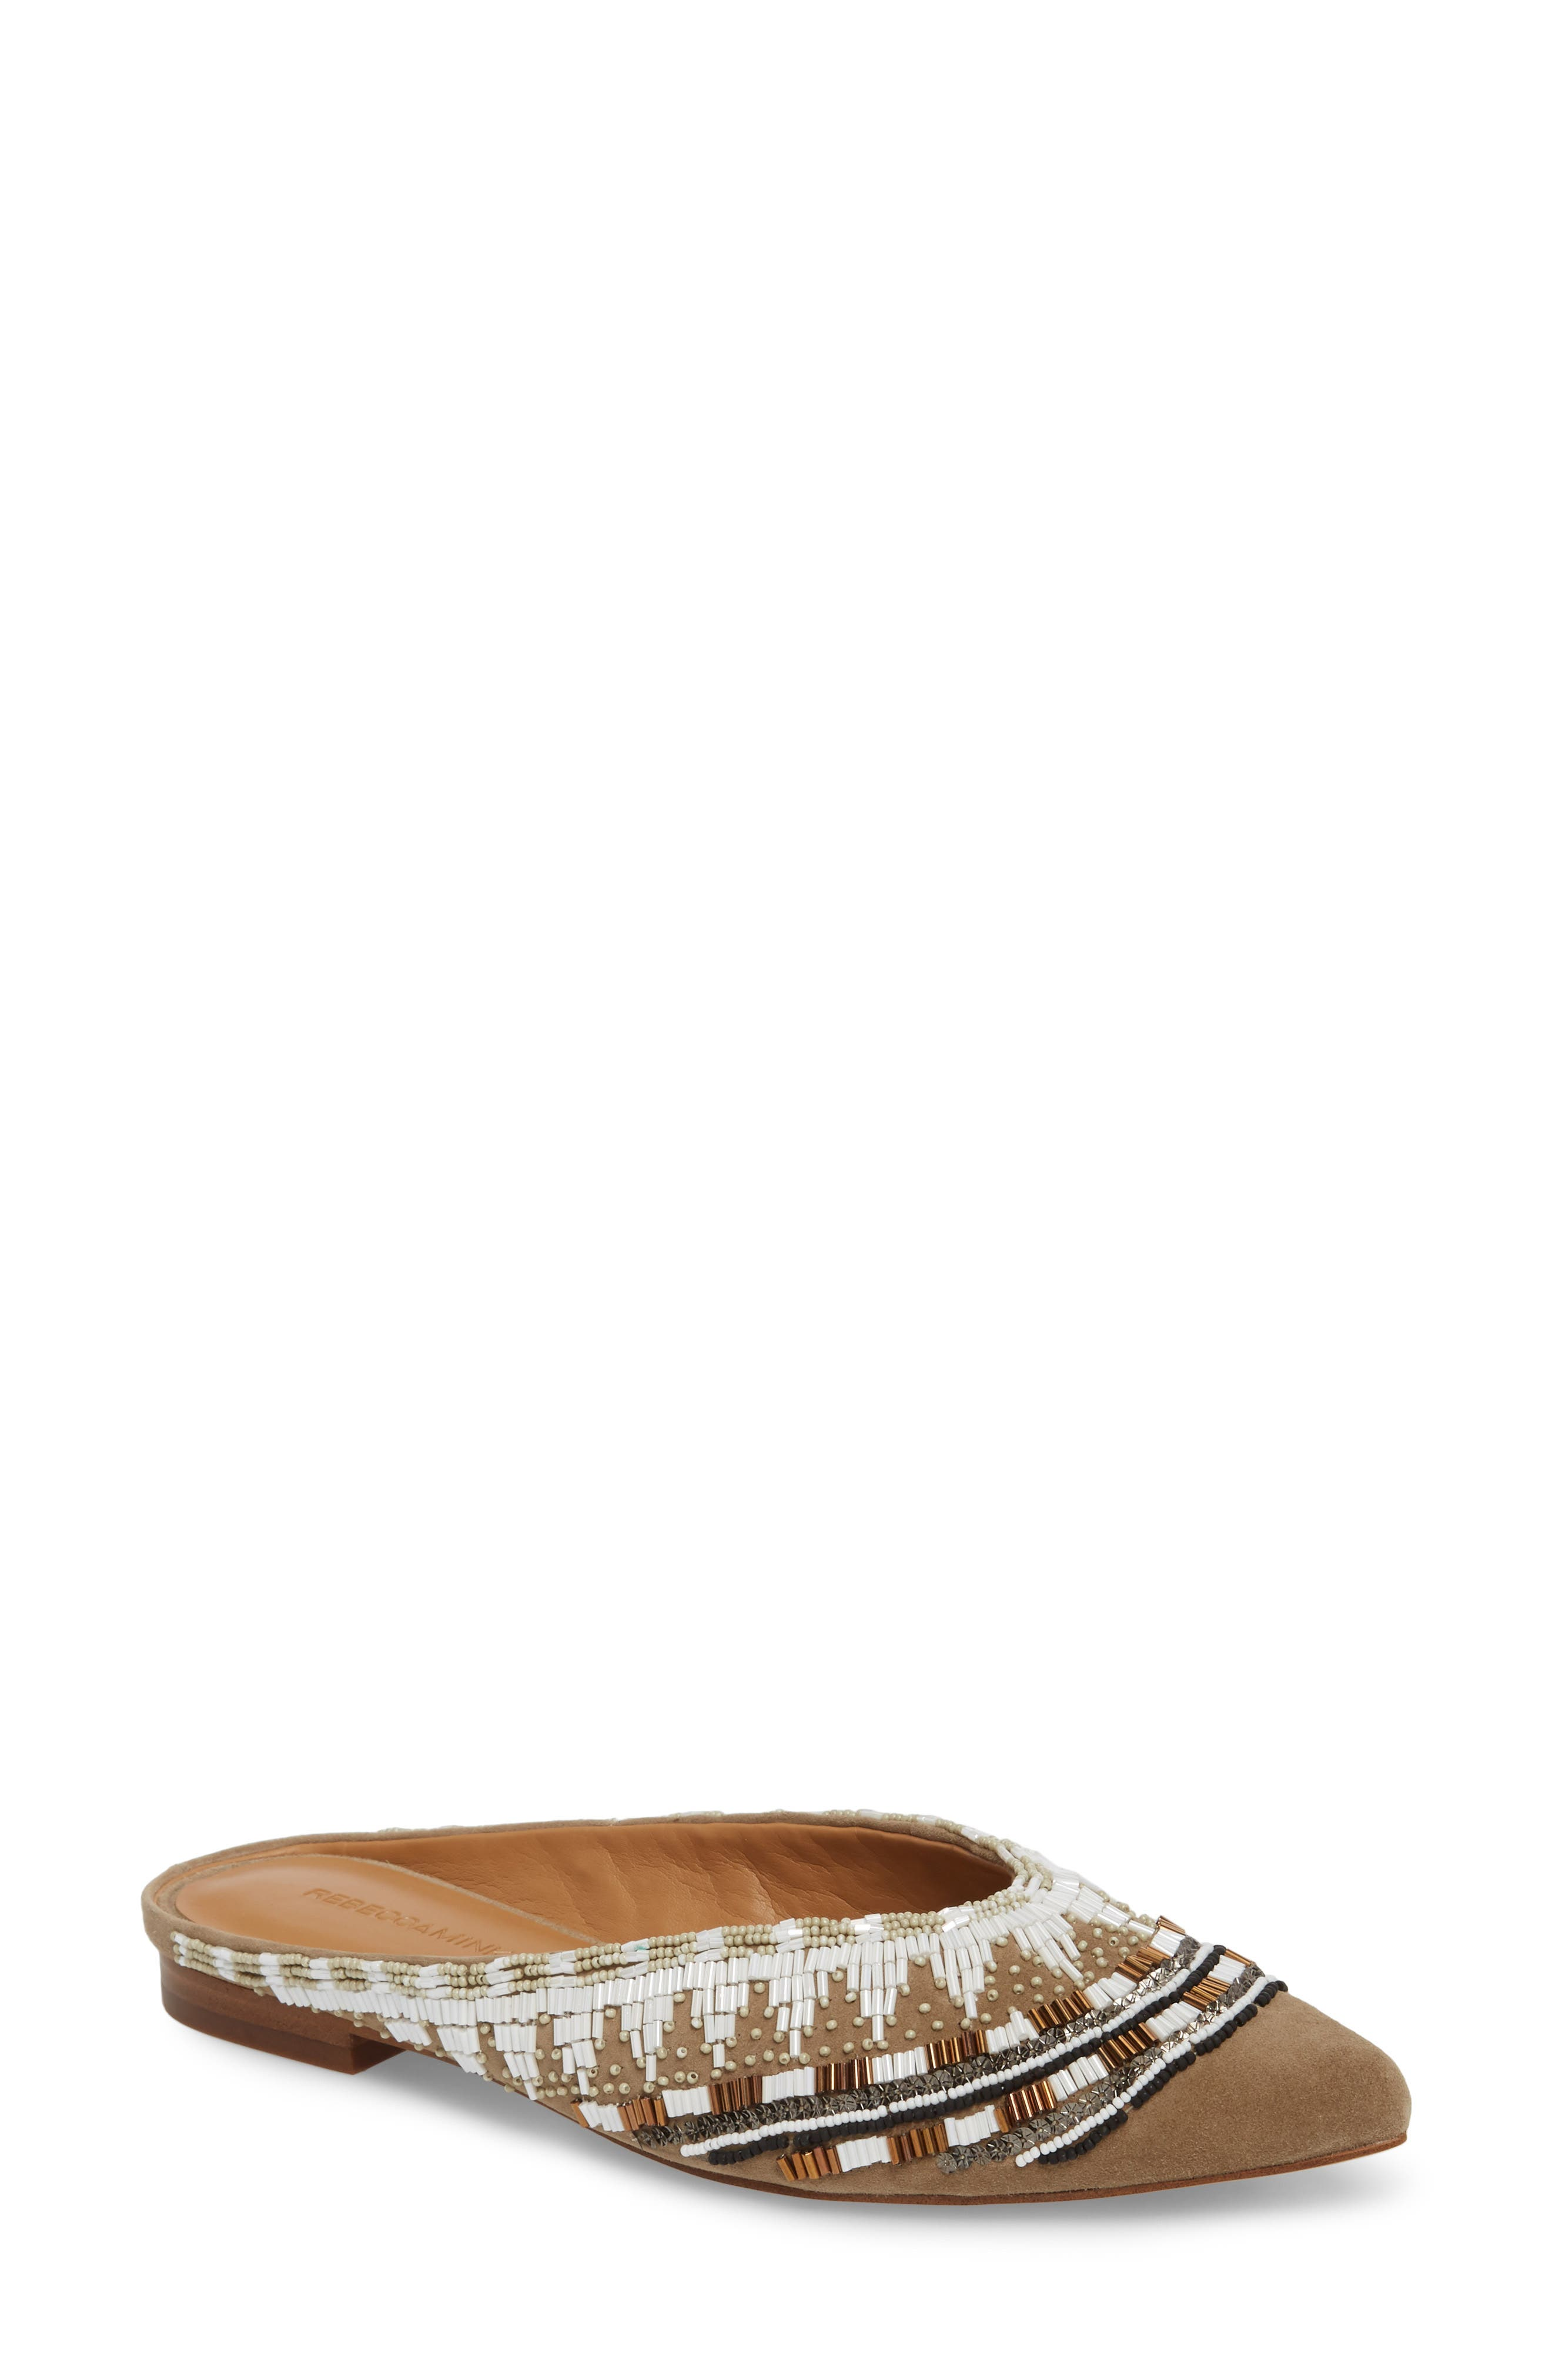 Roxane Beaded Flat Mule,                             Main thumbnail 1, color,                             TAUPE SUEDE